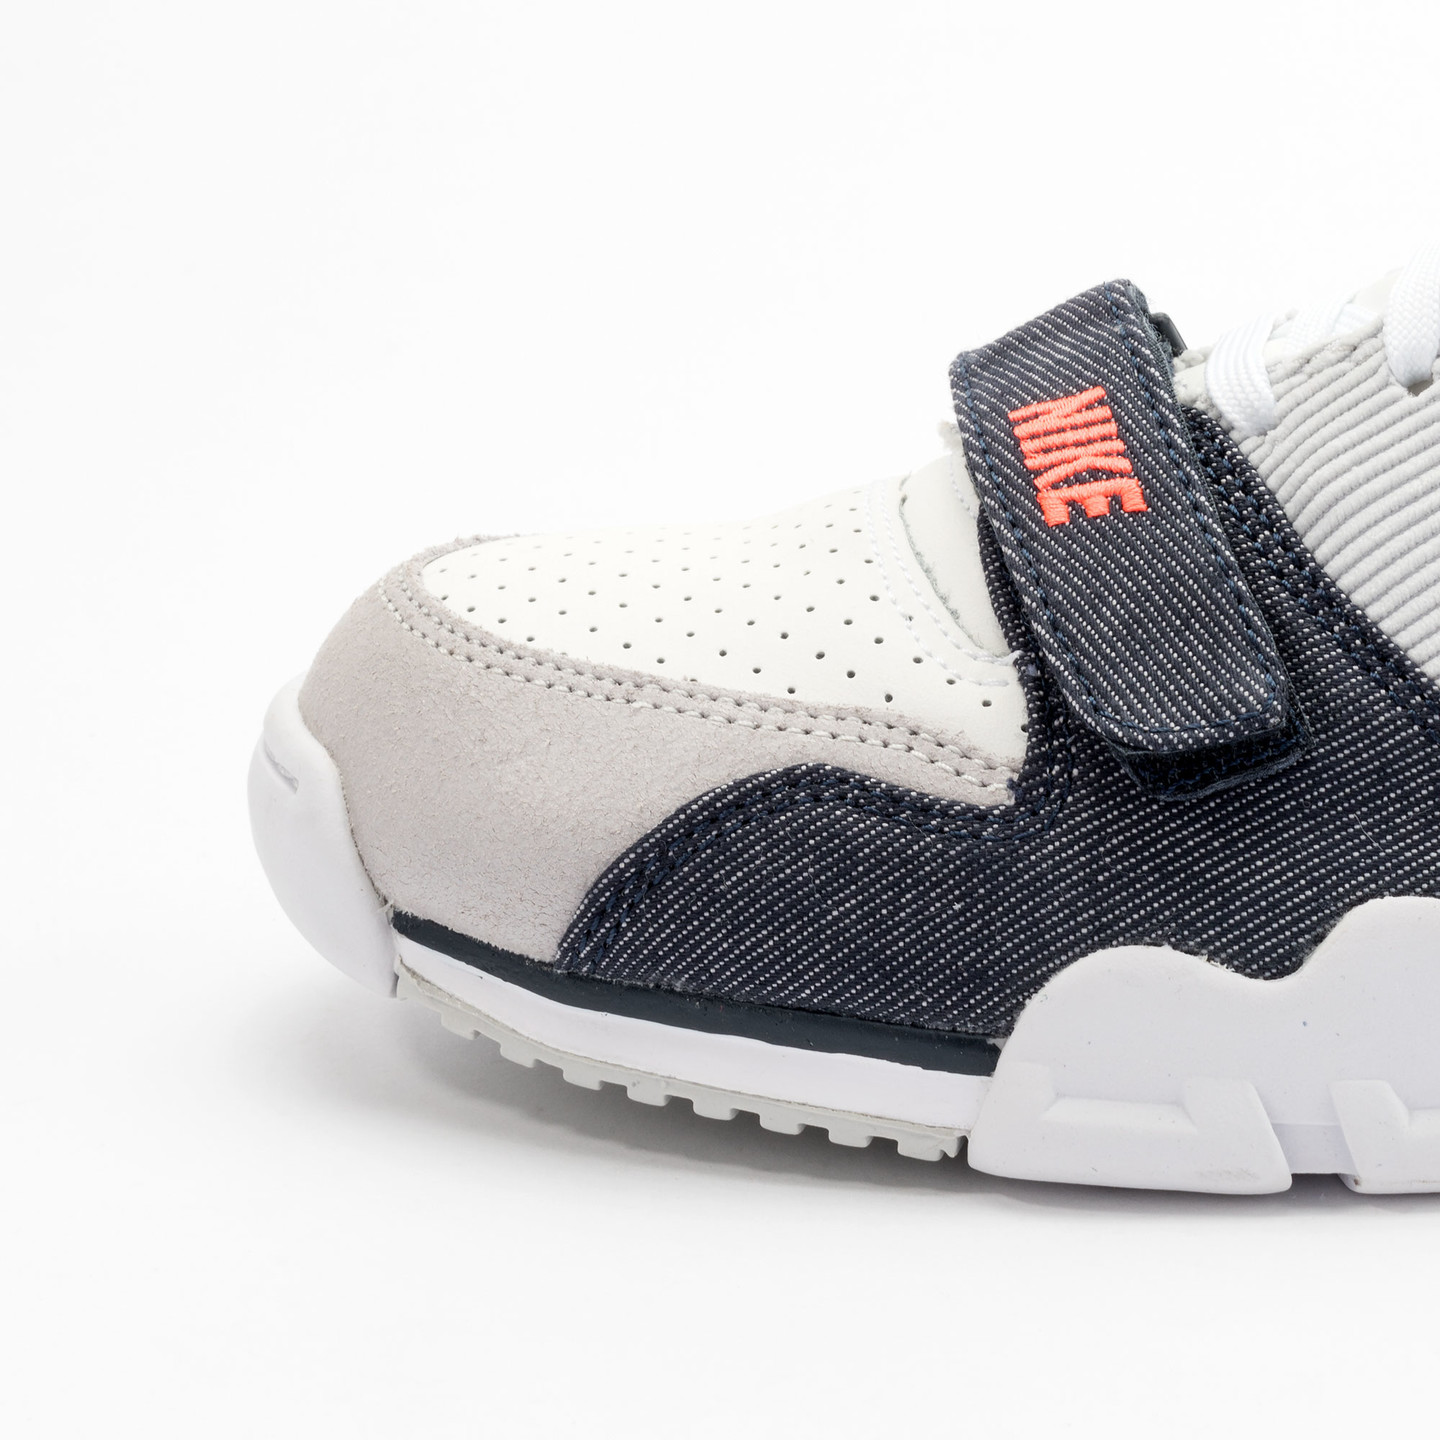 Nike Air Trainer 1 Mid White / Obsidian / Pure Platinum 317554-103-45